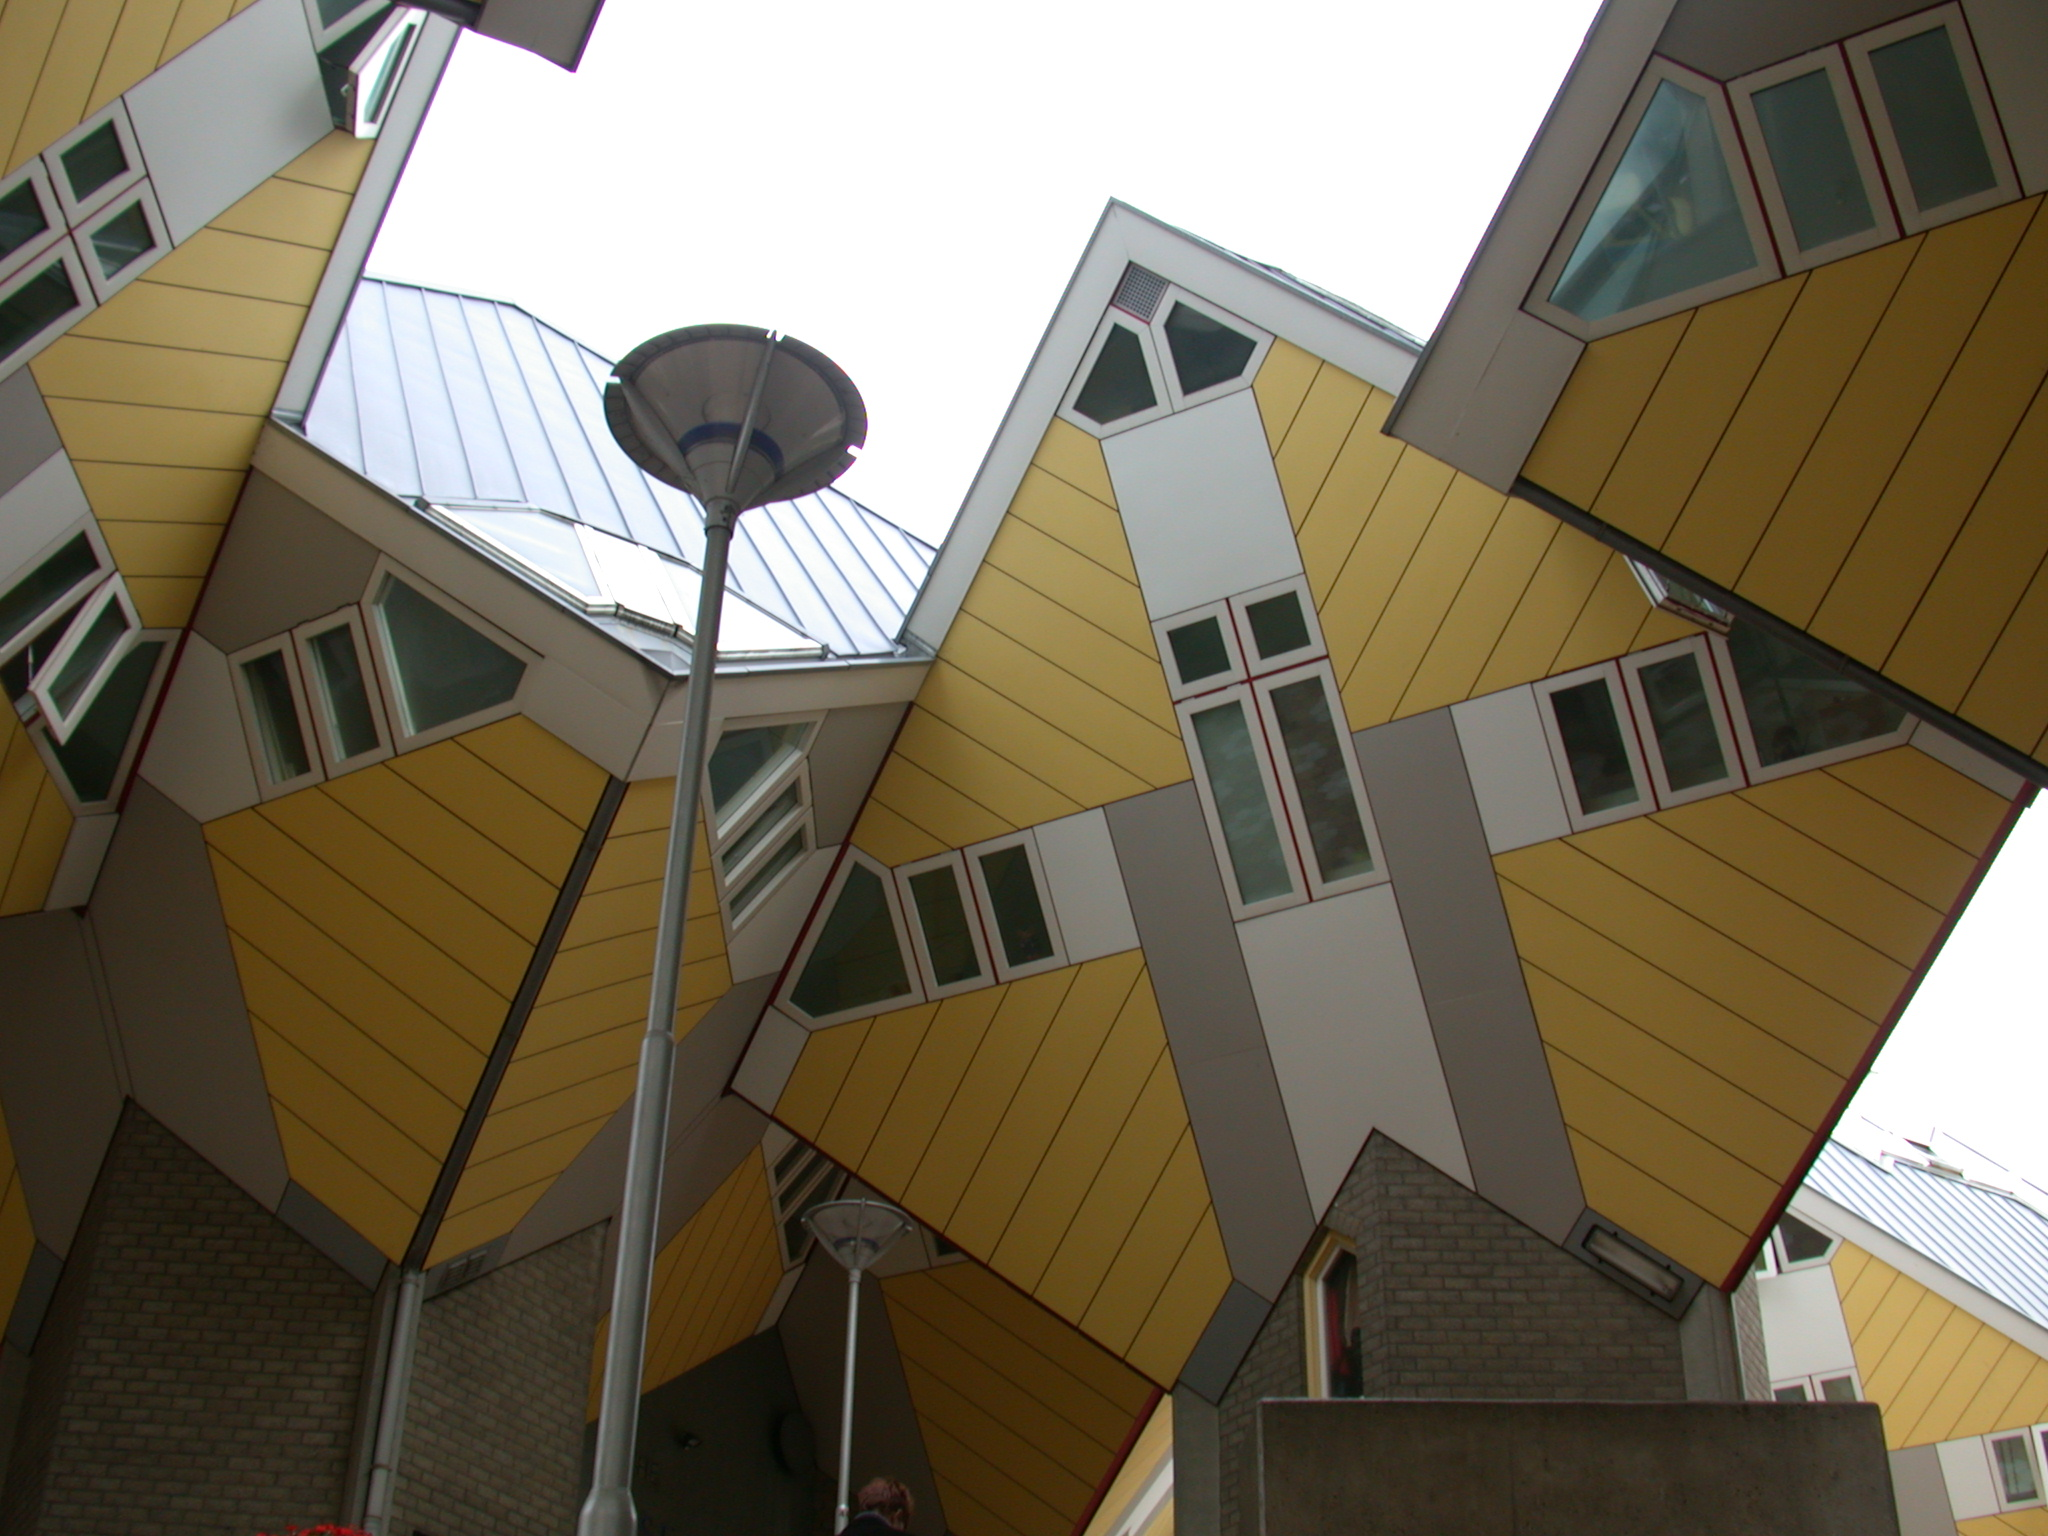 image.php?image=b6architecture_exteriors032.jpg&dl=1